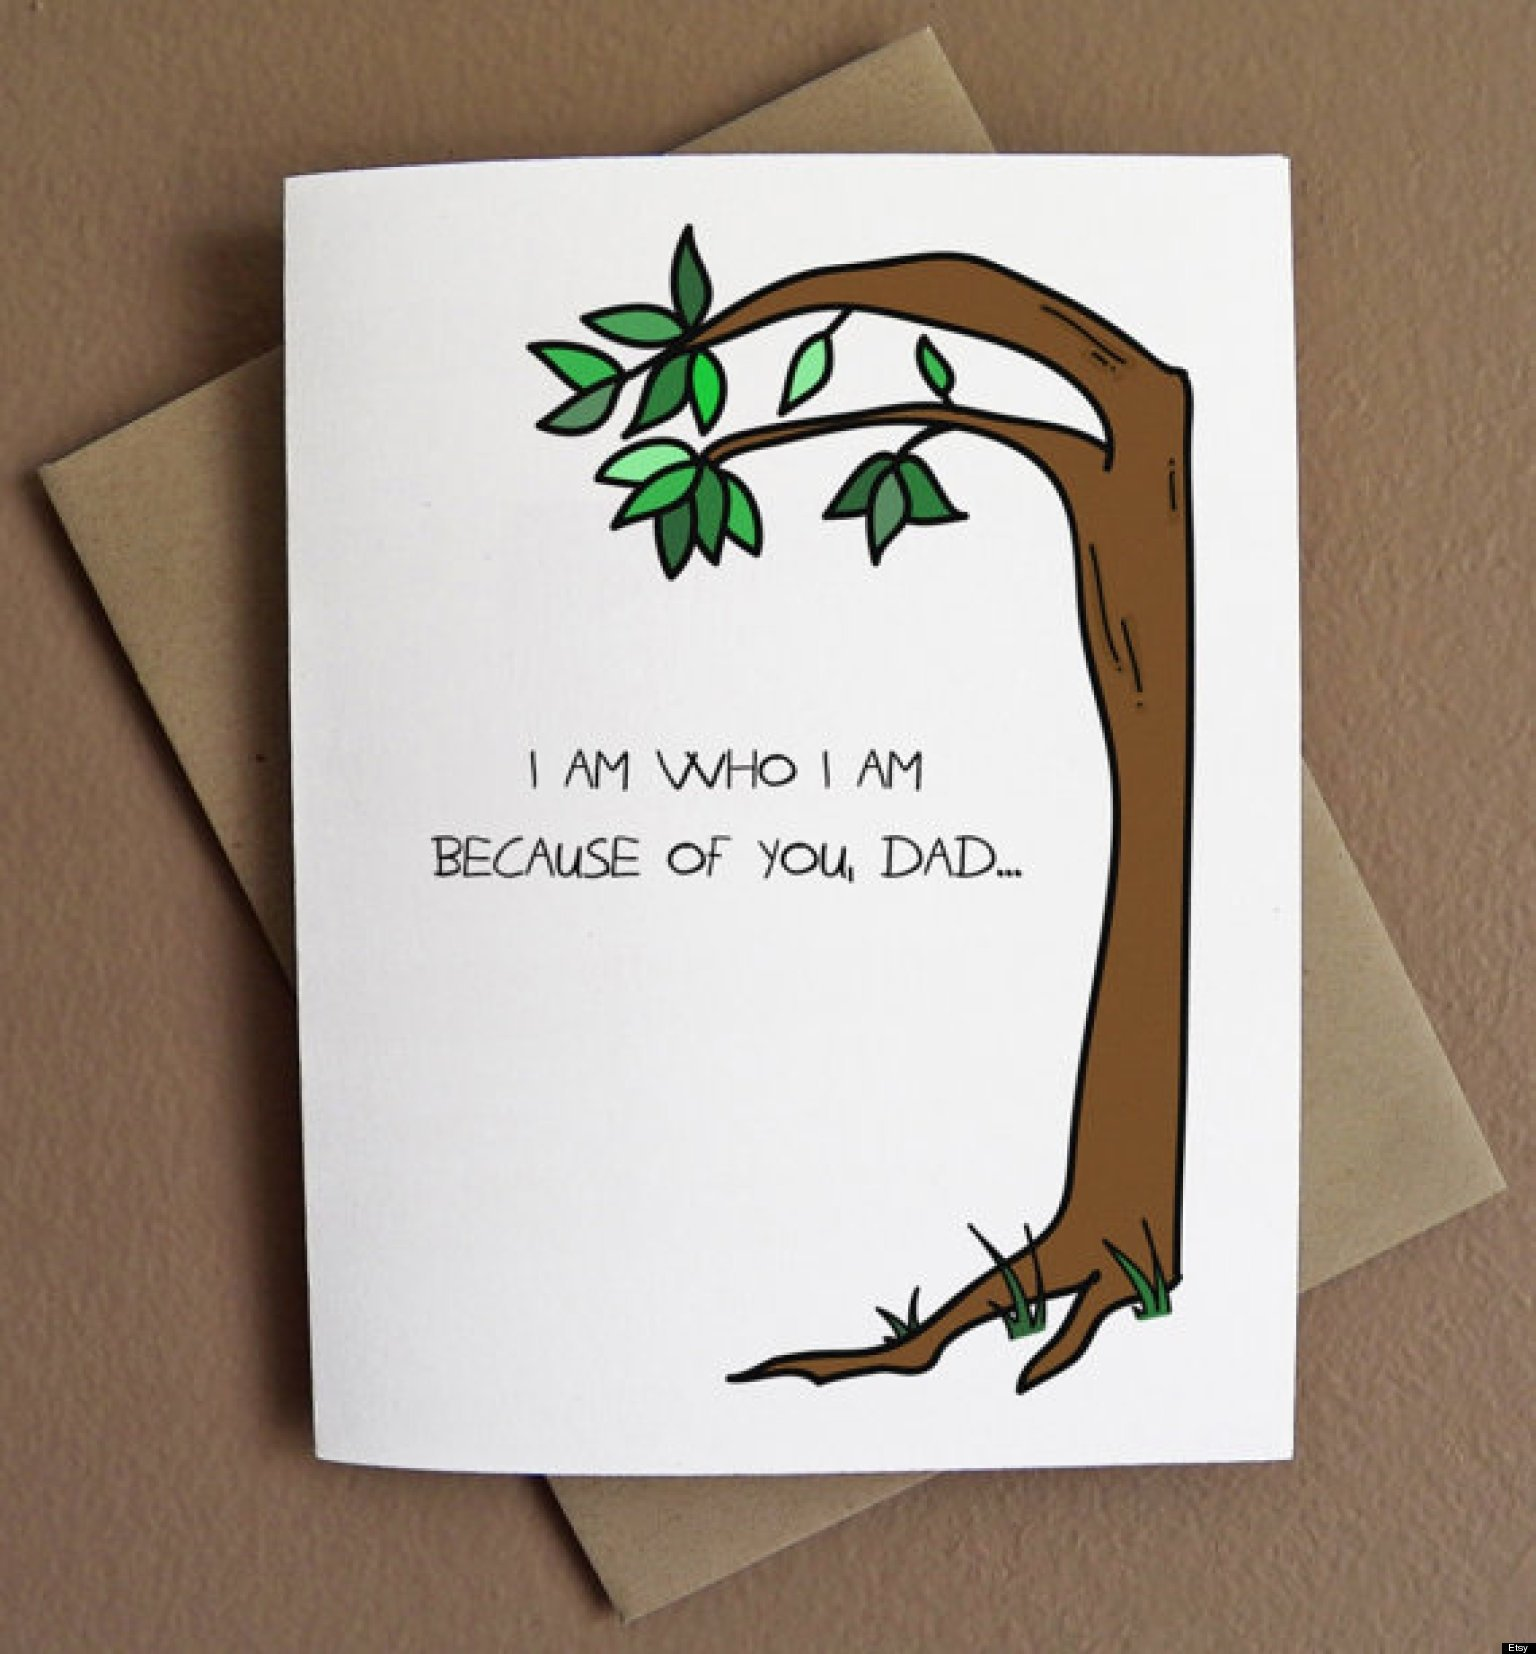 10 Most Recommended Gift Ideas For Father In Law fathers day cards 15 picks for dad without cliches huffpost 2020